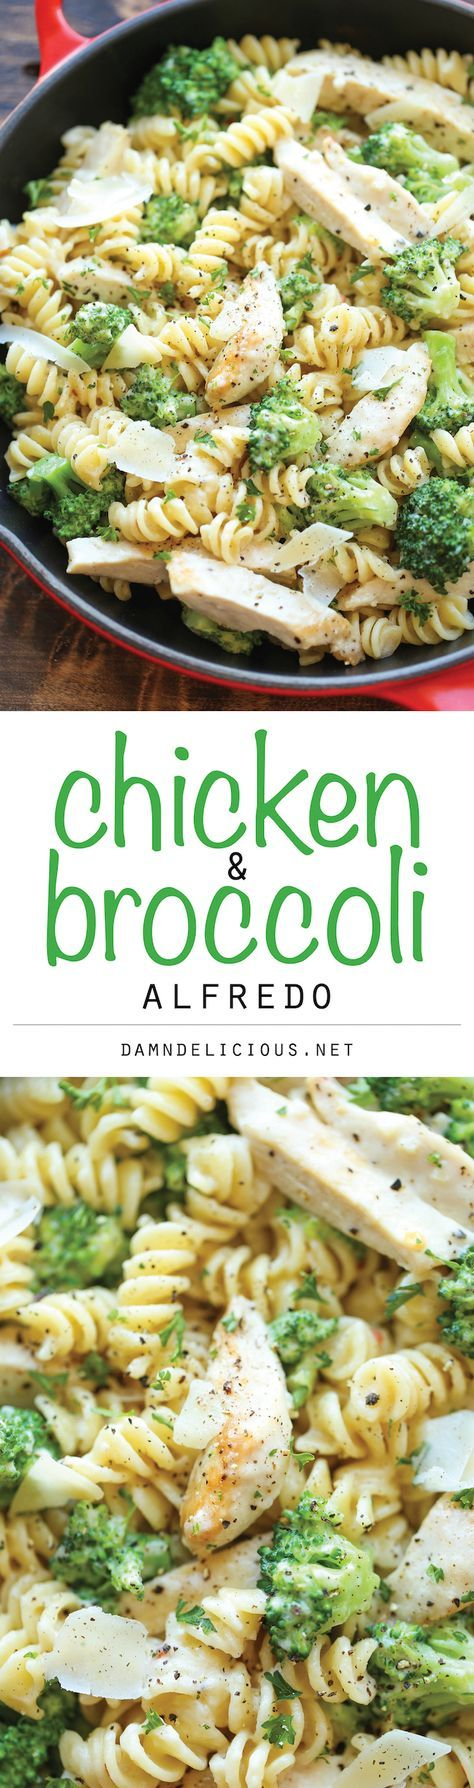 Chicken and Broccoli Alfredo - So easy, so creamy and just so simple to whip up in 30 minutes from start to finish - perfect for those busy weeknights!